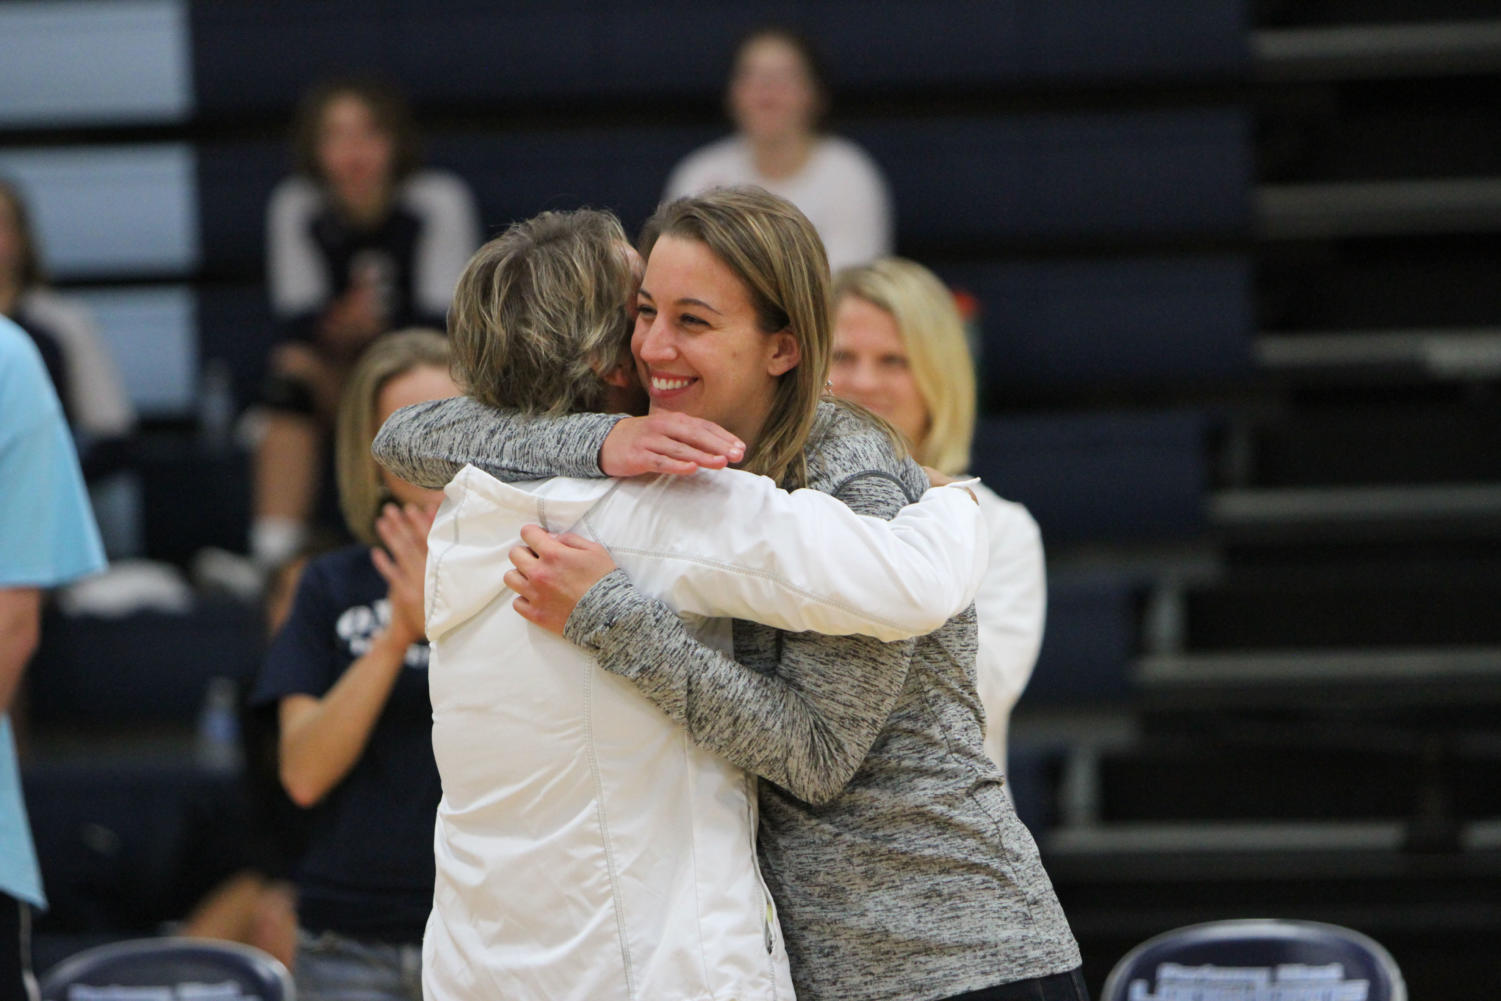 """Susan Dean hugs her 23-year-old daughter Molly Dean before the volleyball game against Webster Groves during the 2016-2017 season. The match ended in a victory for the Longhorns in two games, 25-18 and 27-25. """"The game was really special, in my mind that speaks for the tradition and longevity of our program,"""" Dean said."""